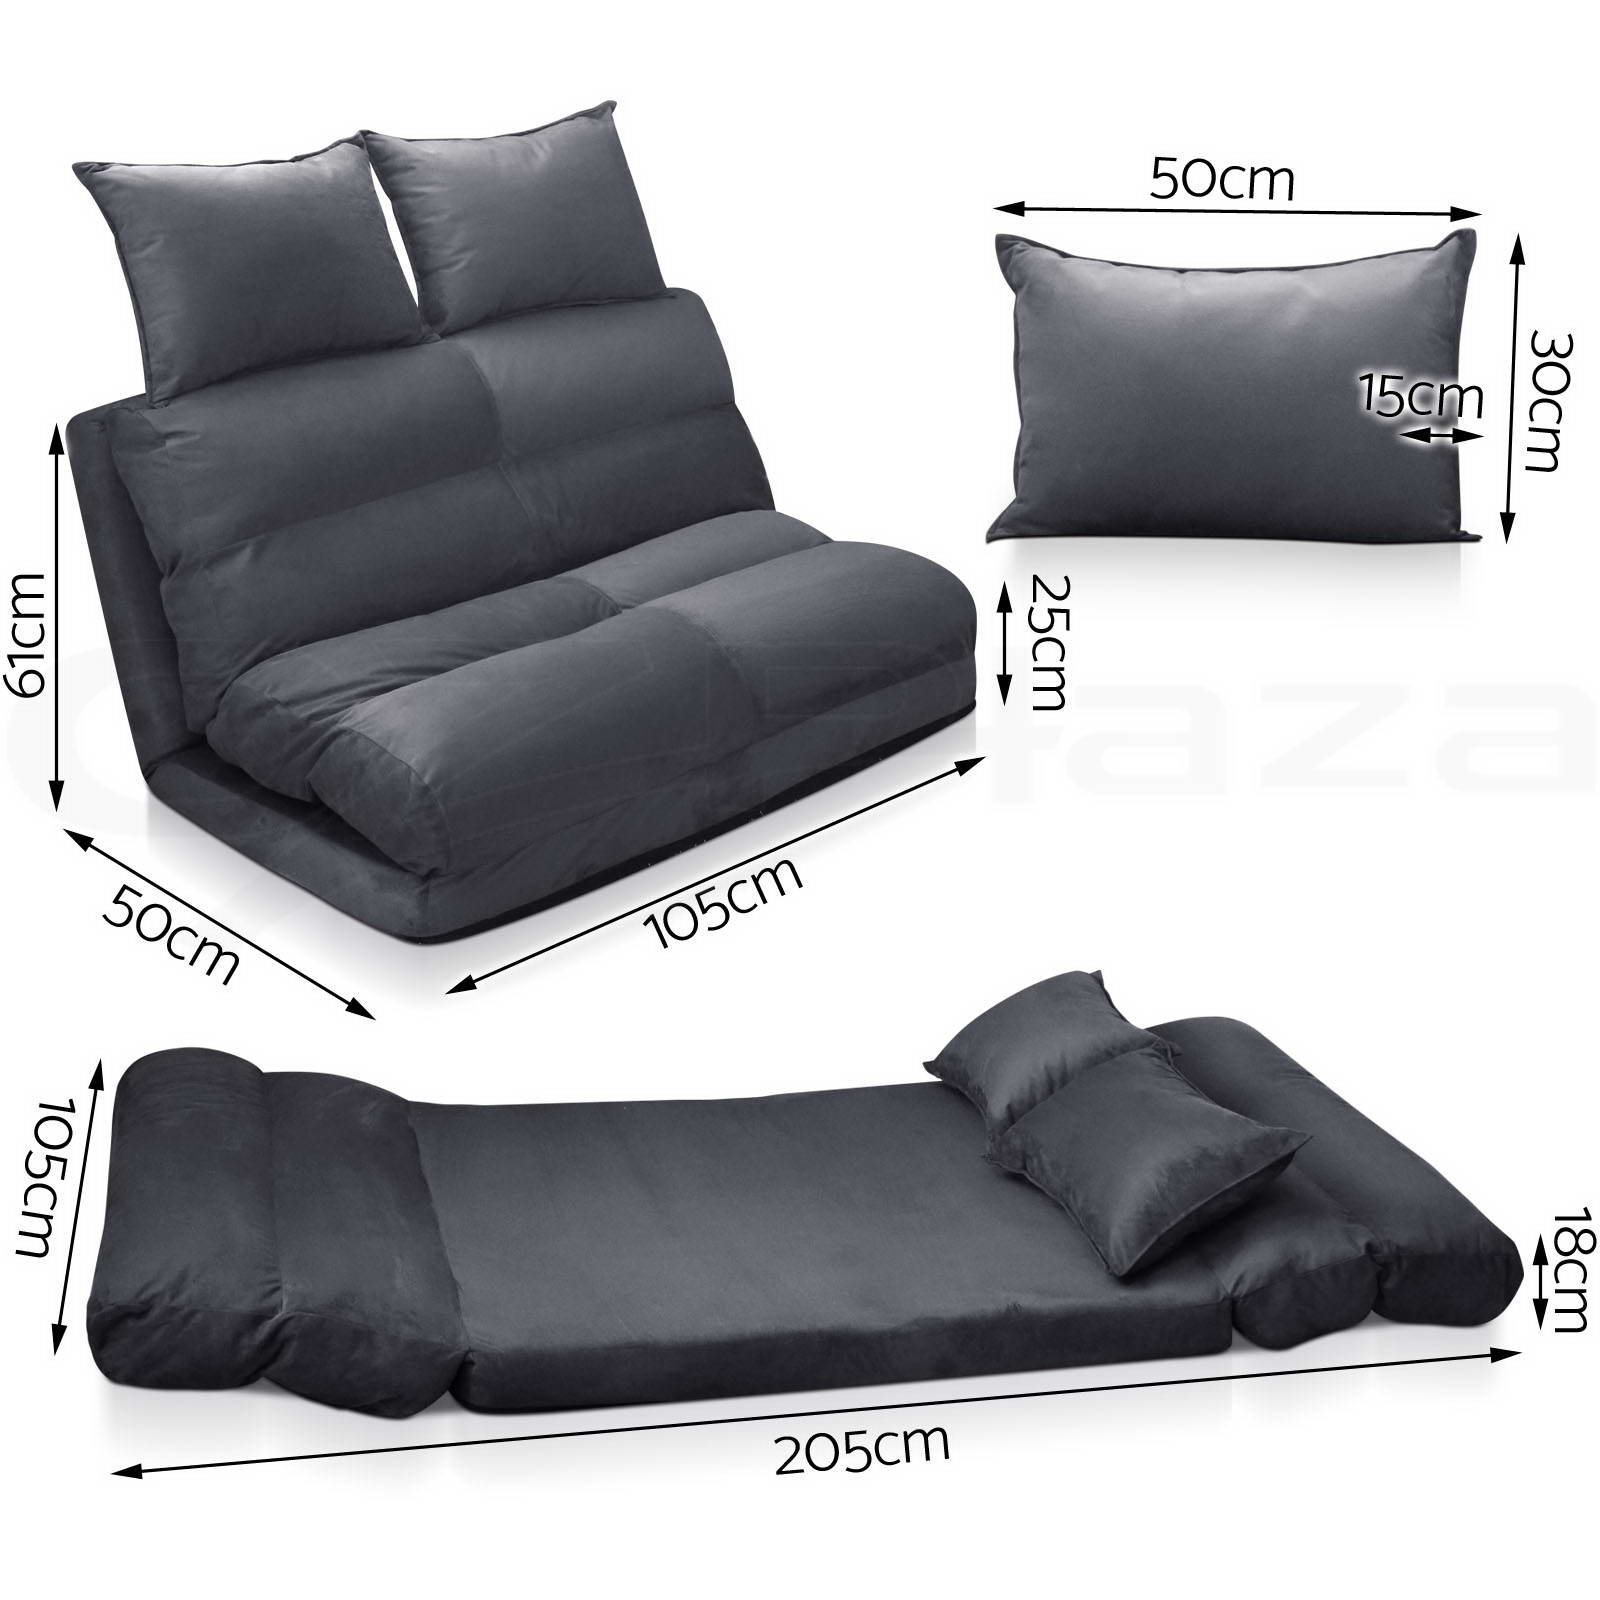 adjustable floor chair with 5 settings anti gravity hanging lounge sofa bed double size recliner folding chaise